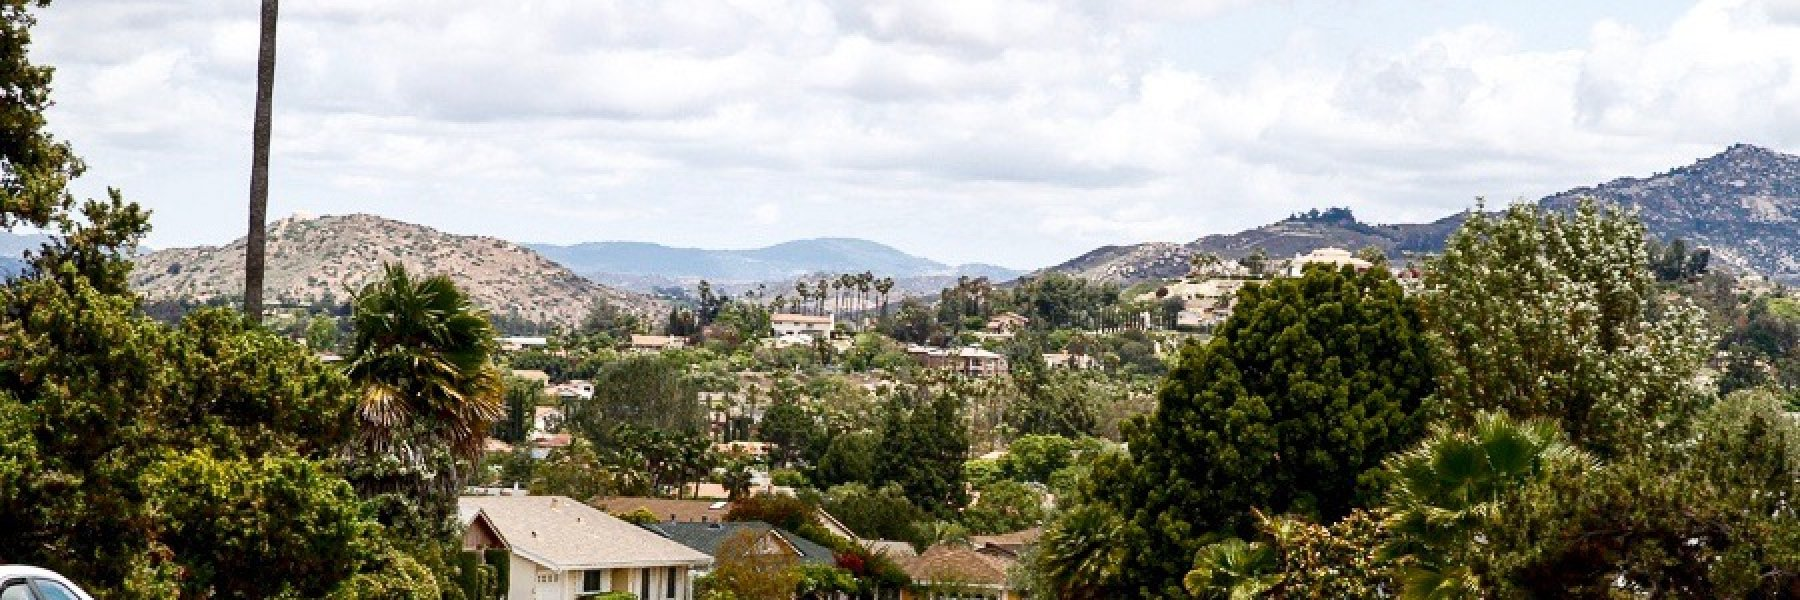 Seven Oaks is a community of homes in Rancho Bernardo California